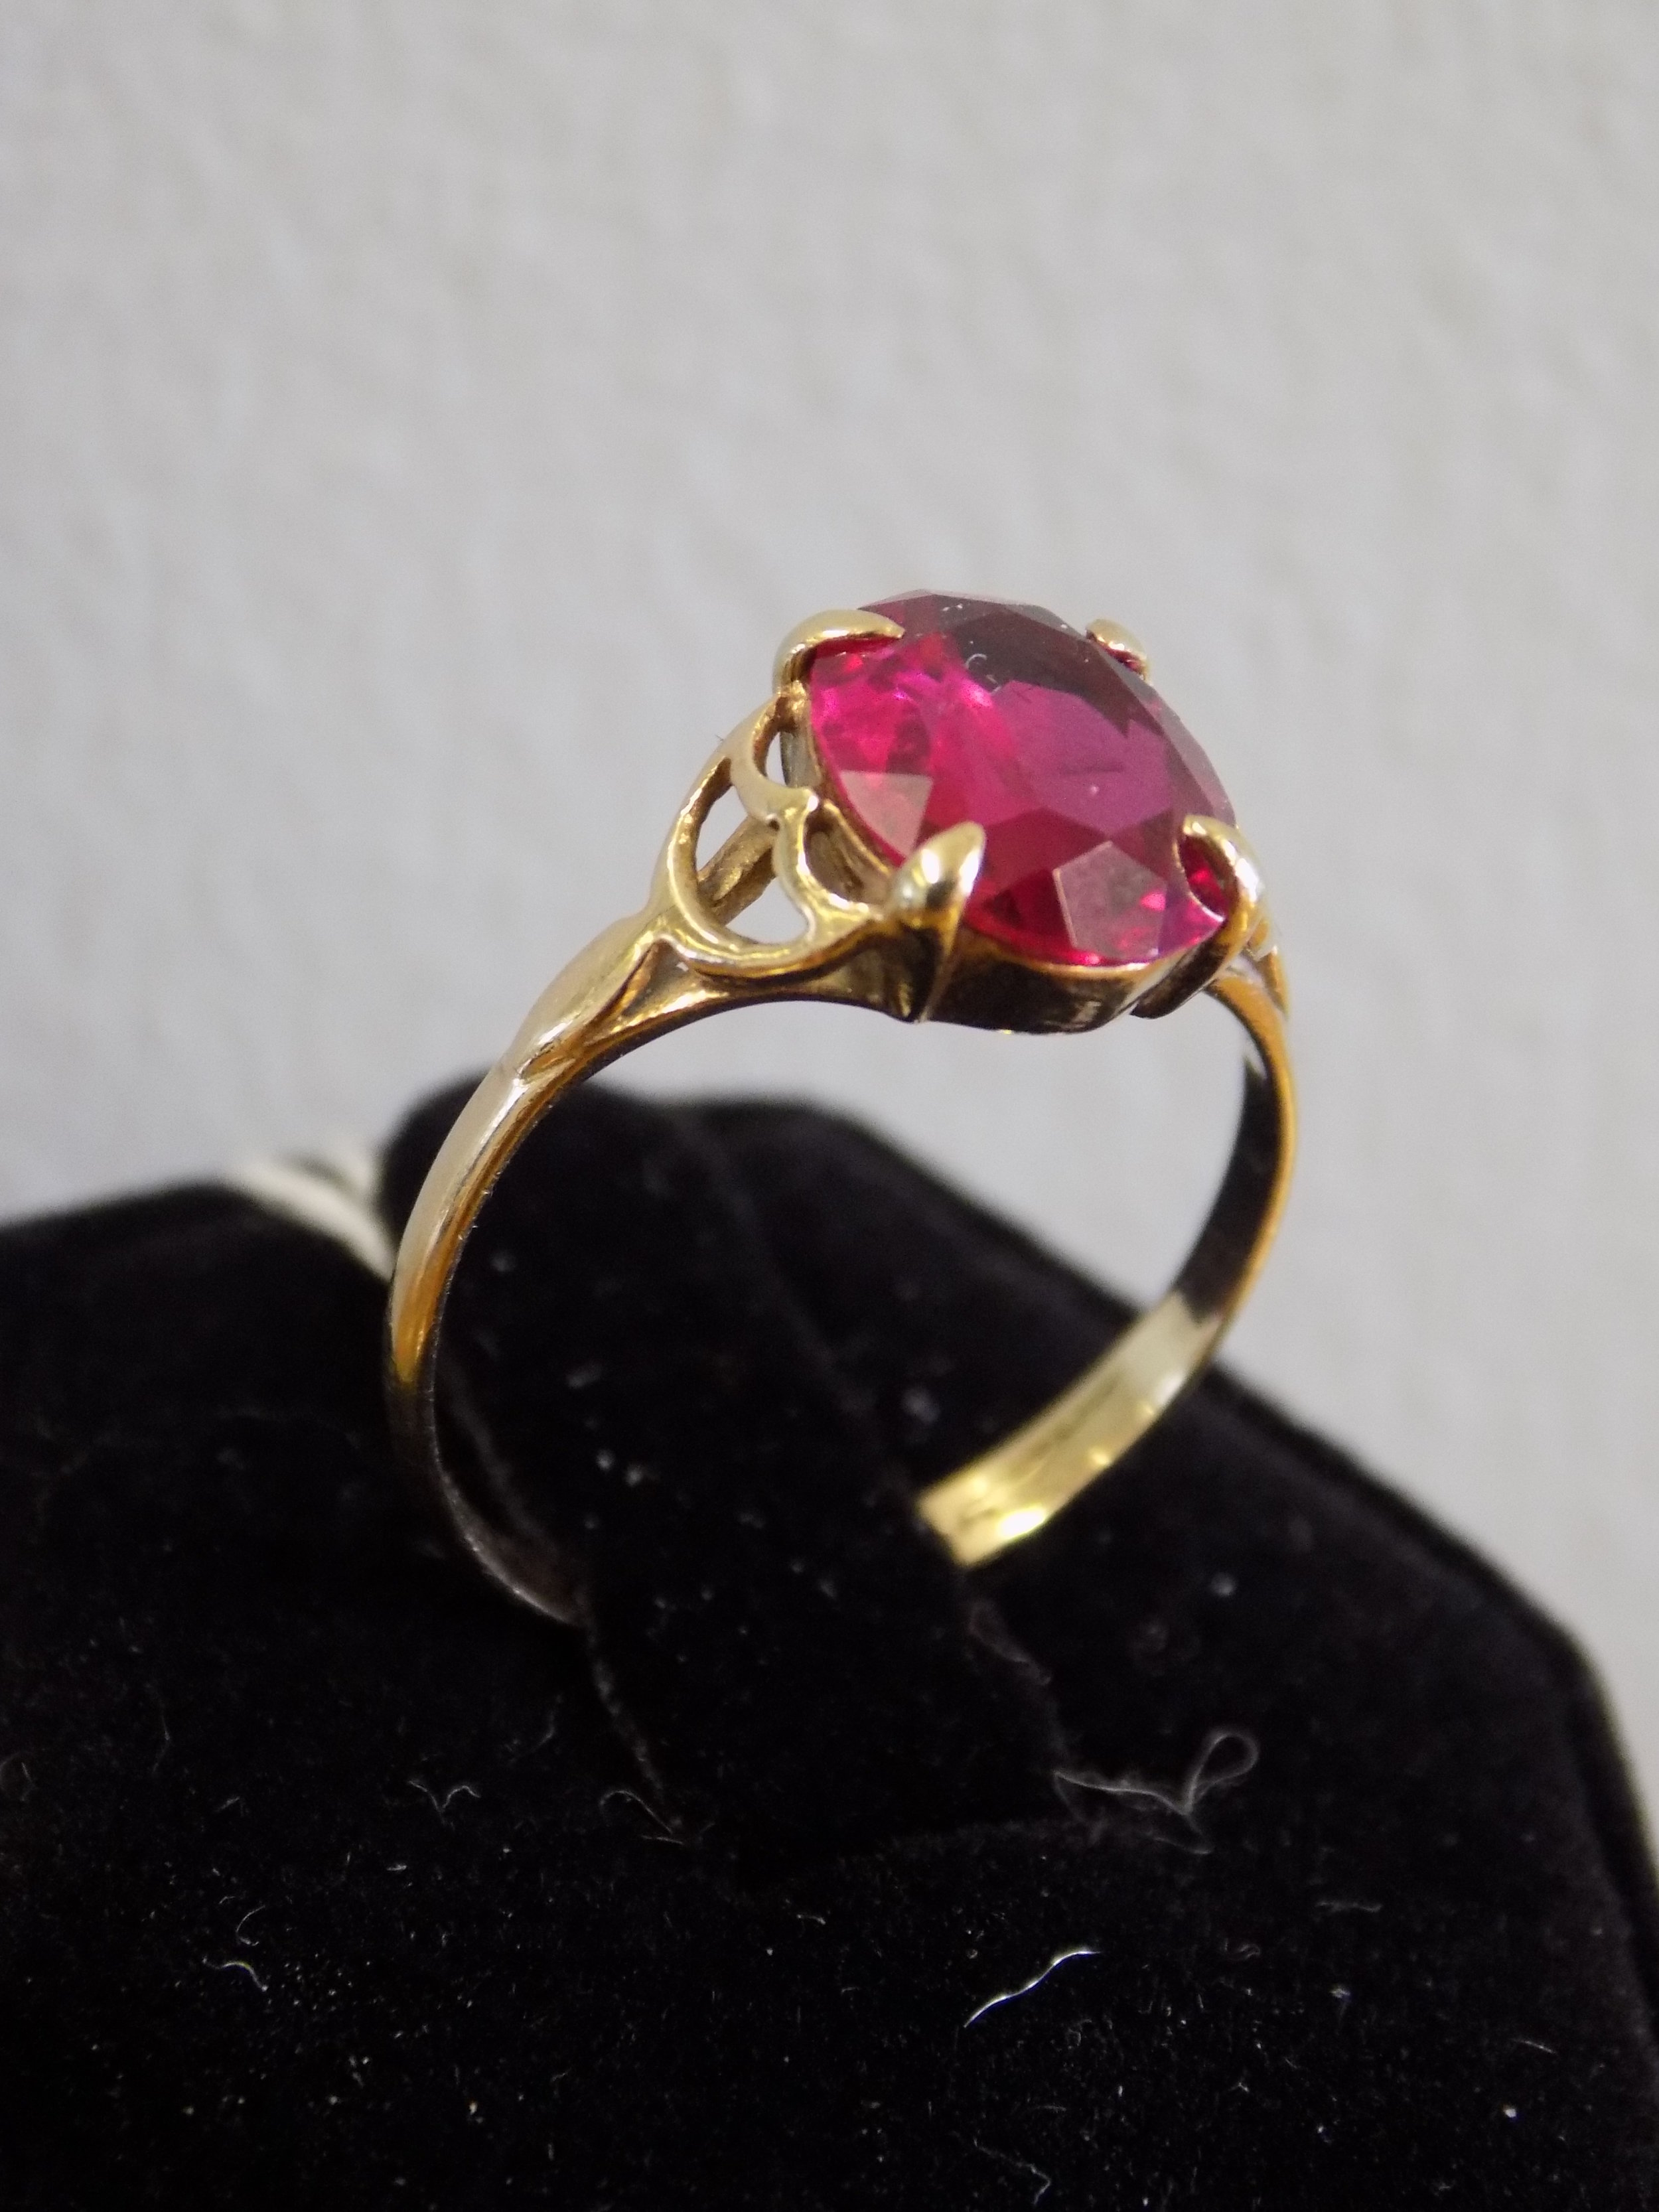 9ct gold and Ruby ring £130.00